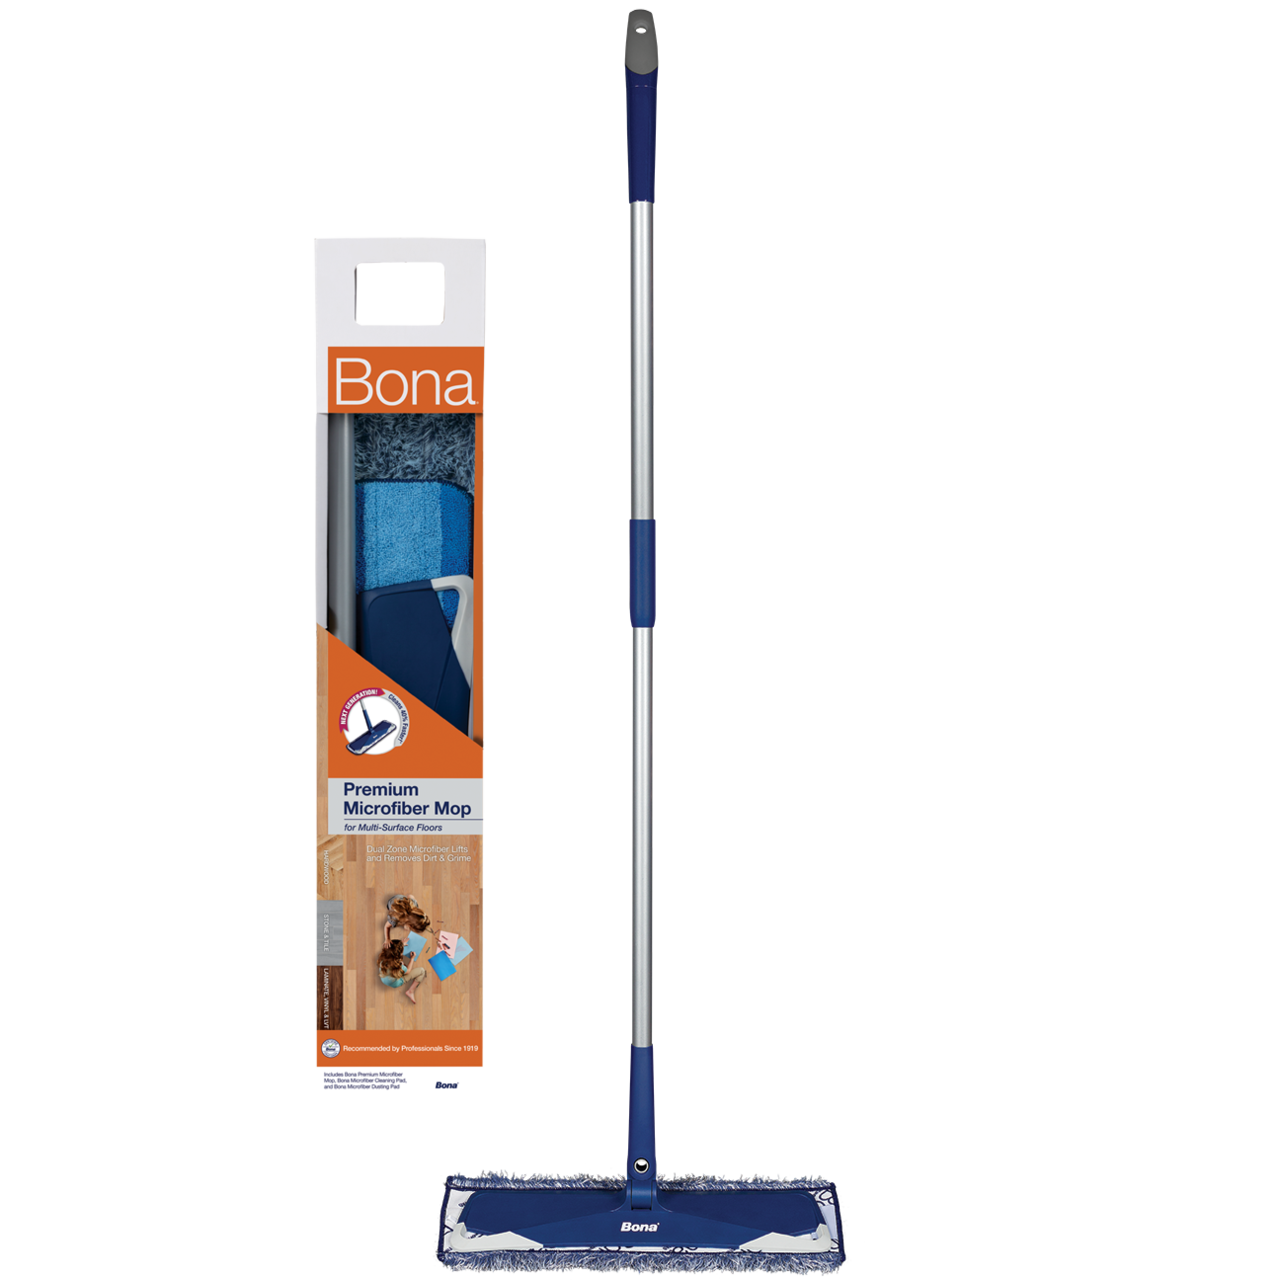 Bona® Premium Microfiber Mop for Multi-Surface Floors